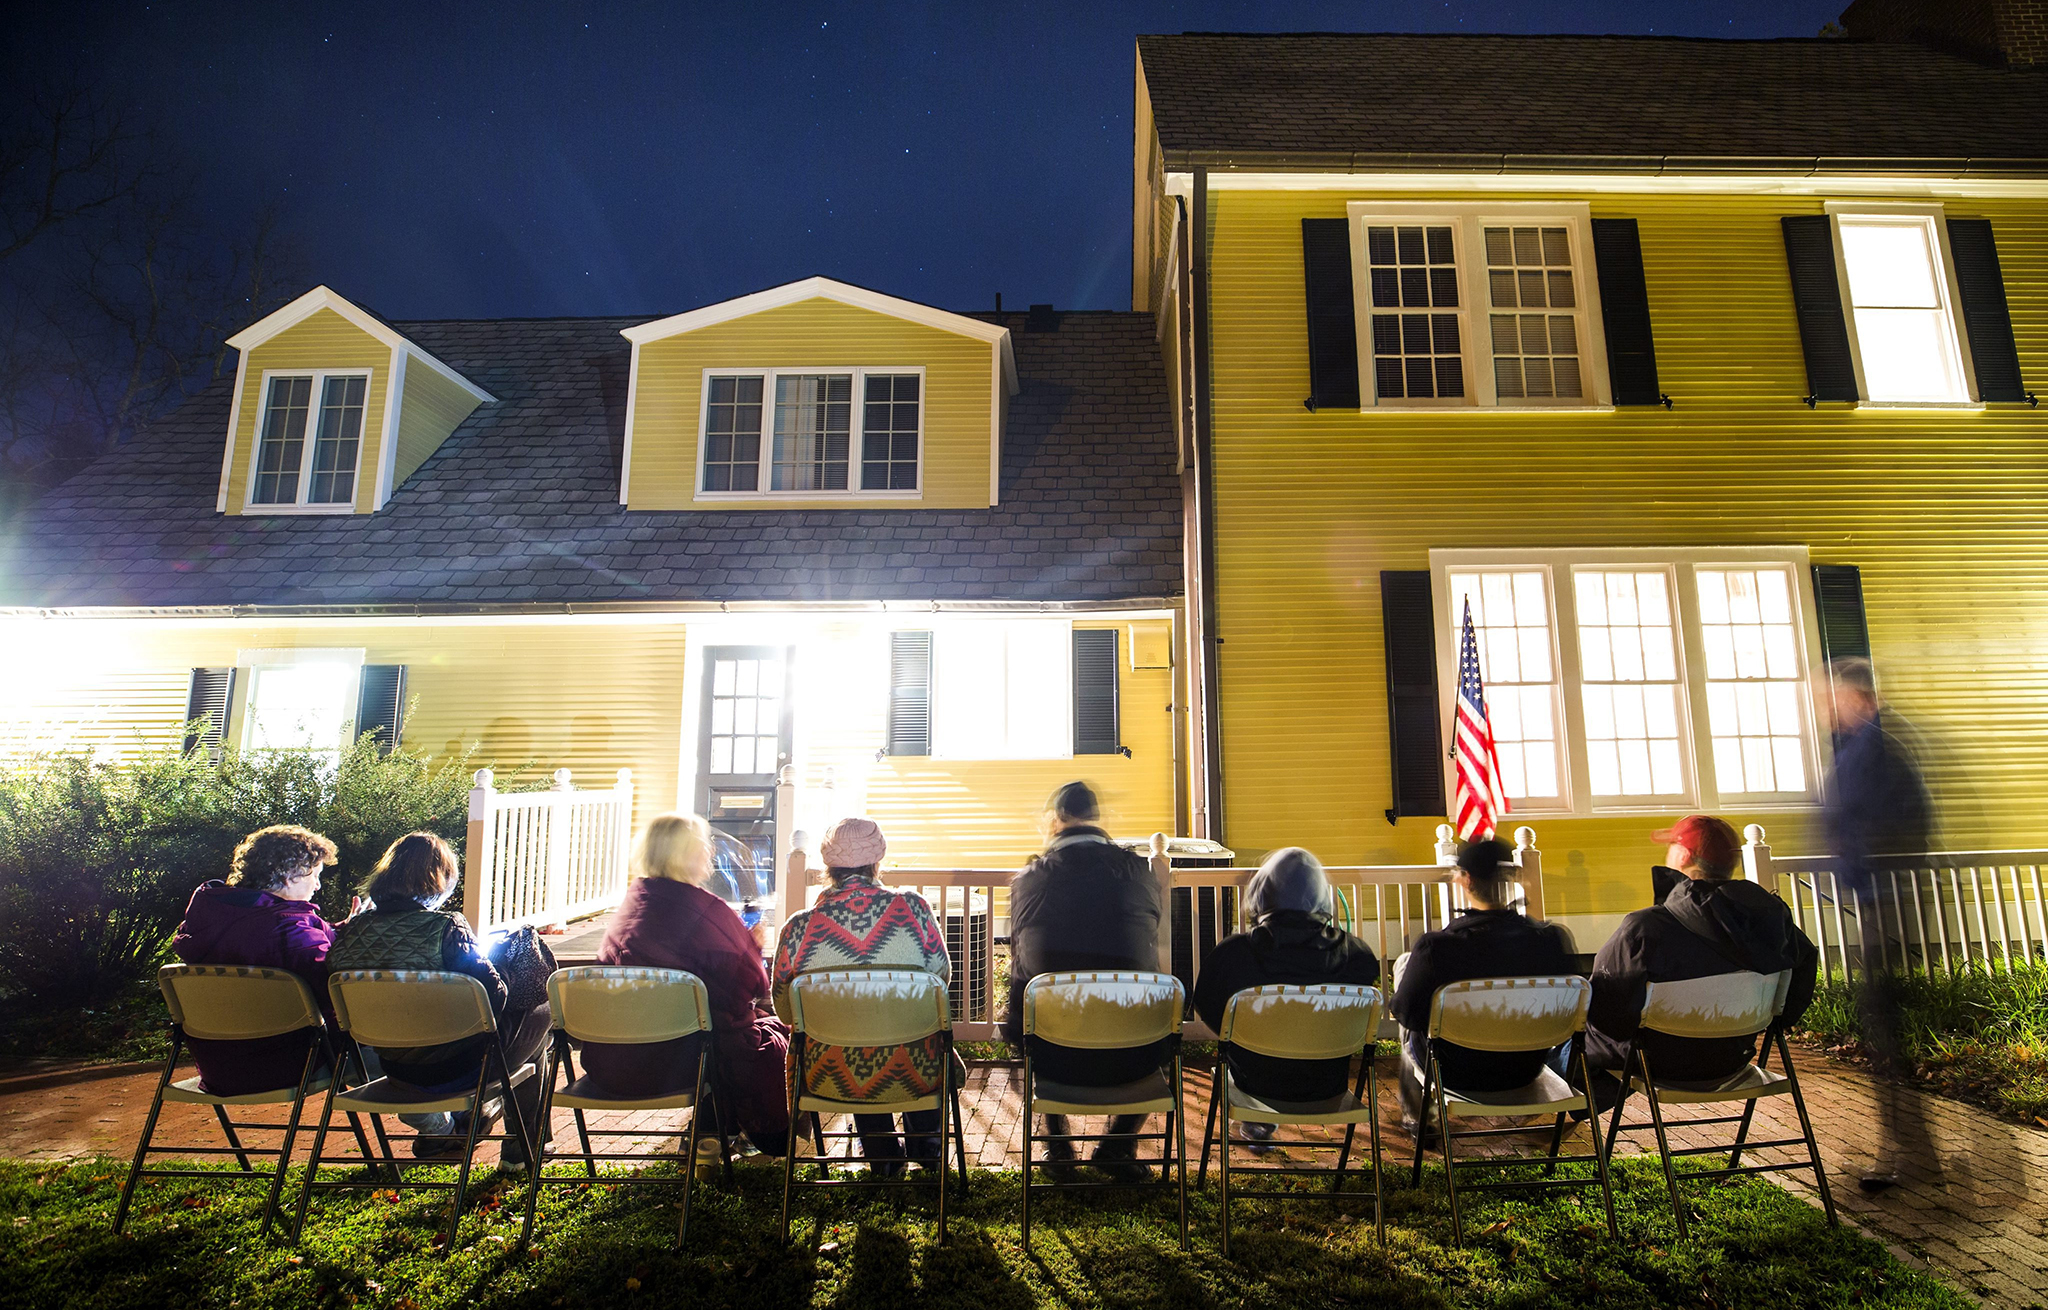 Virginia residents wait in line in the pre-dawn hours to vote in the the 2016 US presidential election before the polls open at an historic property called the 'Hunter House' at Nottoway Park in Vienna, Virginia, USA, 08 November 2016. US Americans are called to the polls in the election to chose the 45th President of the United States of America to serve from 2017 through 2020.  EPA/JIM LO SCALZO